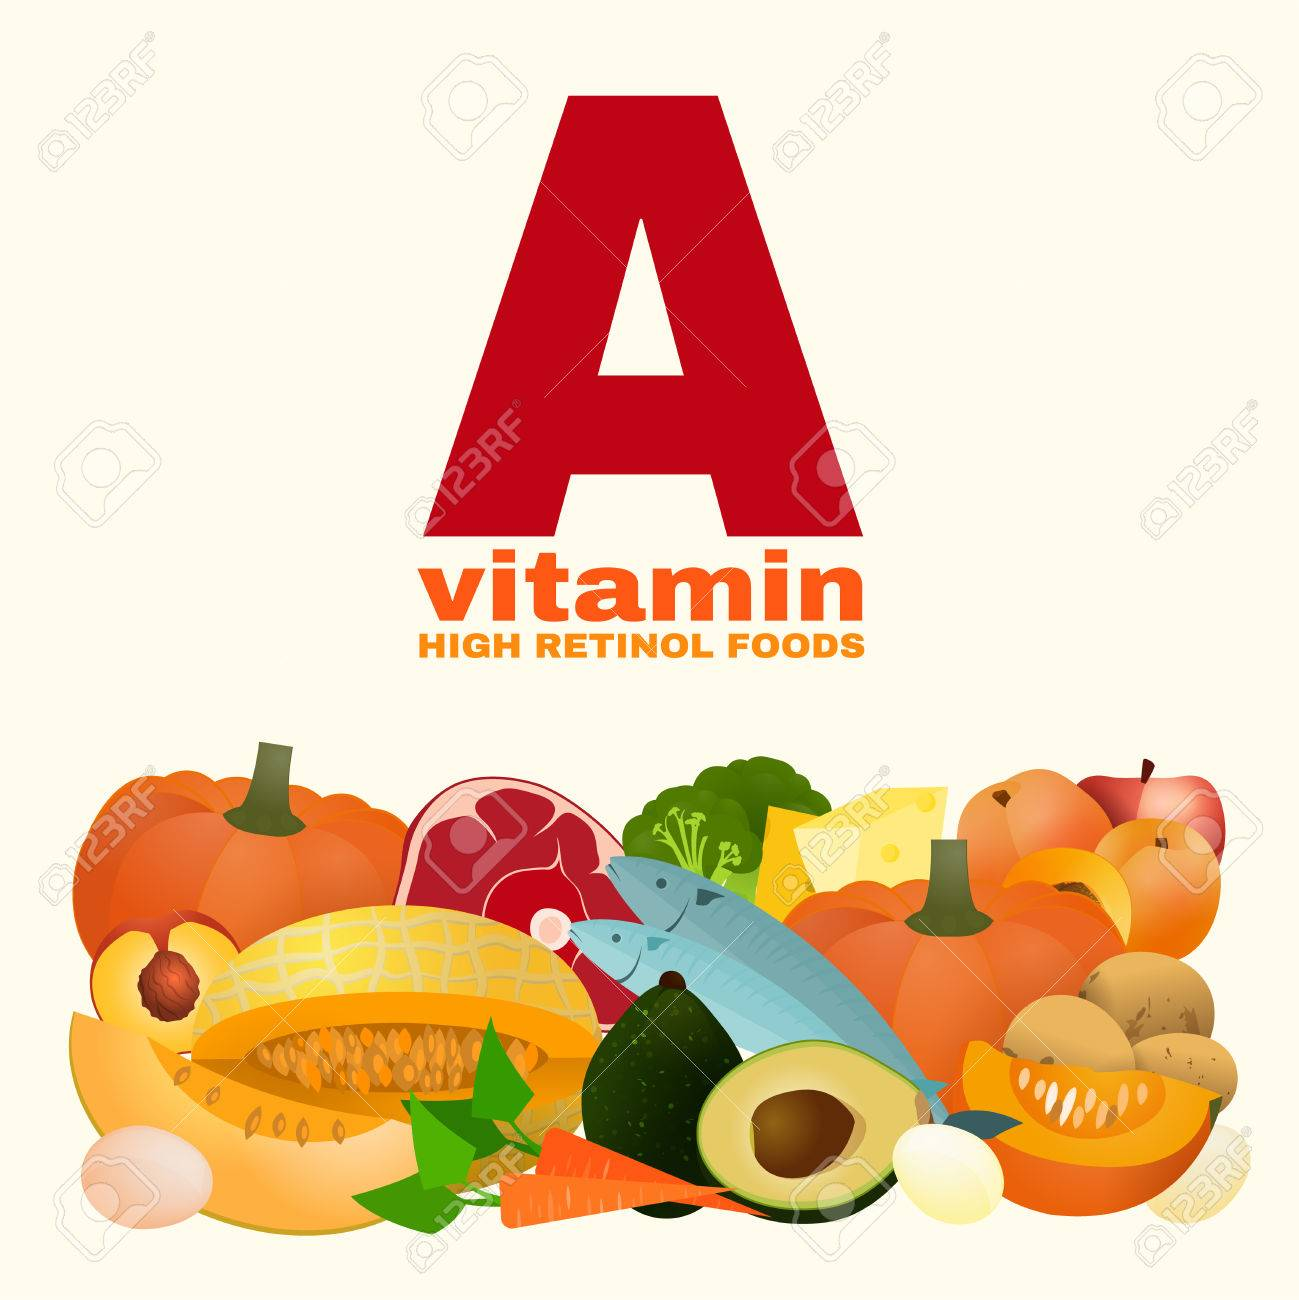 Vitamine a aliments riches